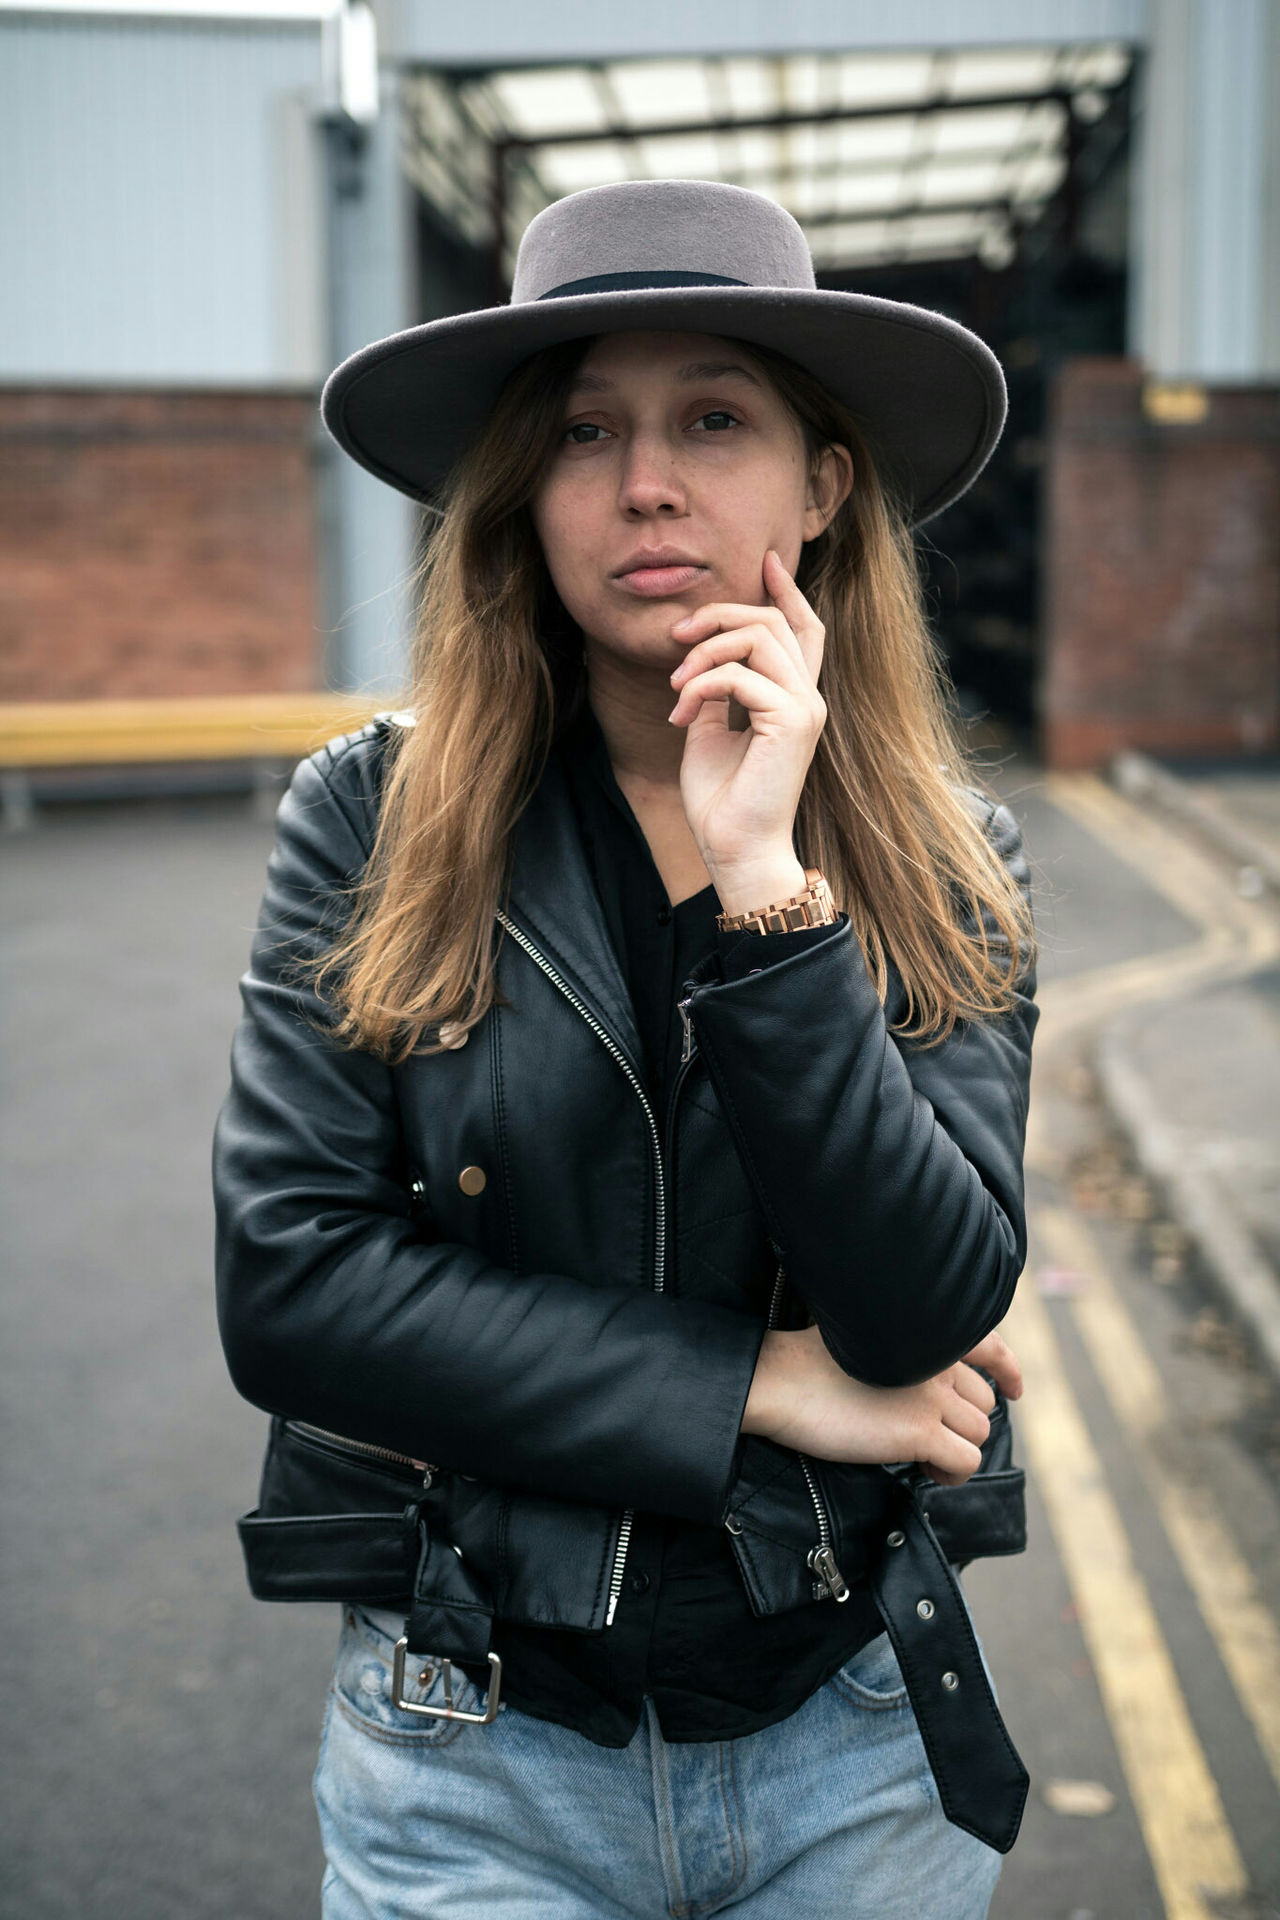 Stand and stare pt 1. Portraits_ig Hat Fashion Young Adult Women Front View City People Adult Only Women One Woman Only Leisure Activity Adults Only One Person Young Women Day Outdoors Musician Fashion Portrait Close-up